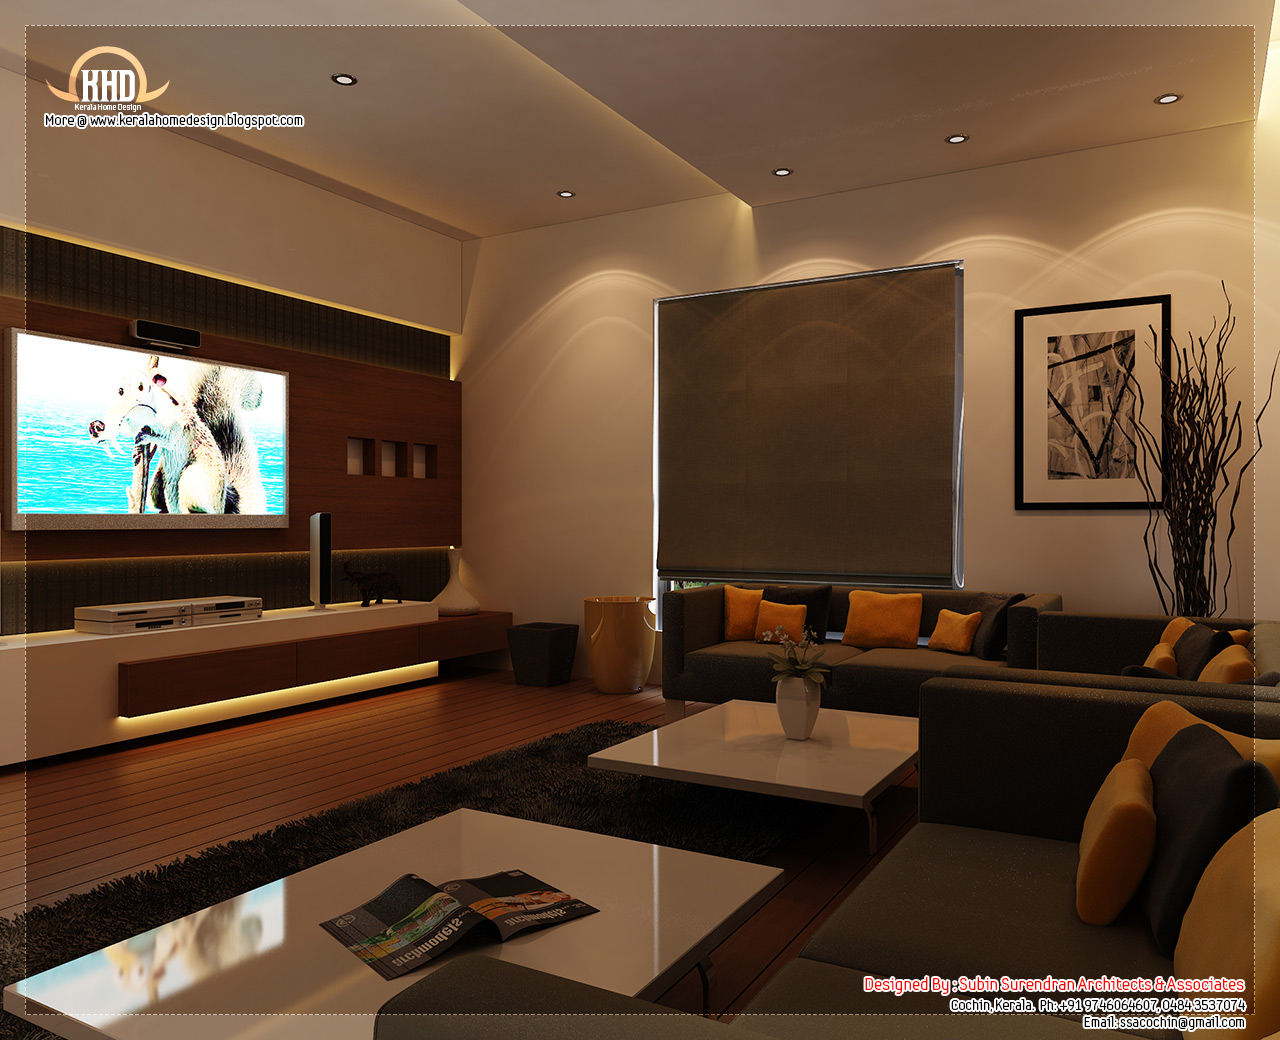 Beautiful home interior designs kerala home design and for Home interior design ideas india